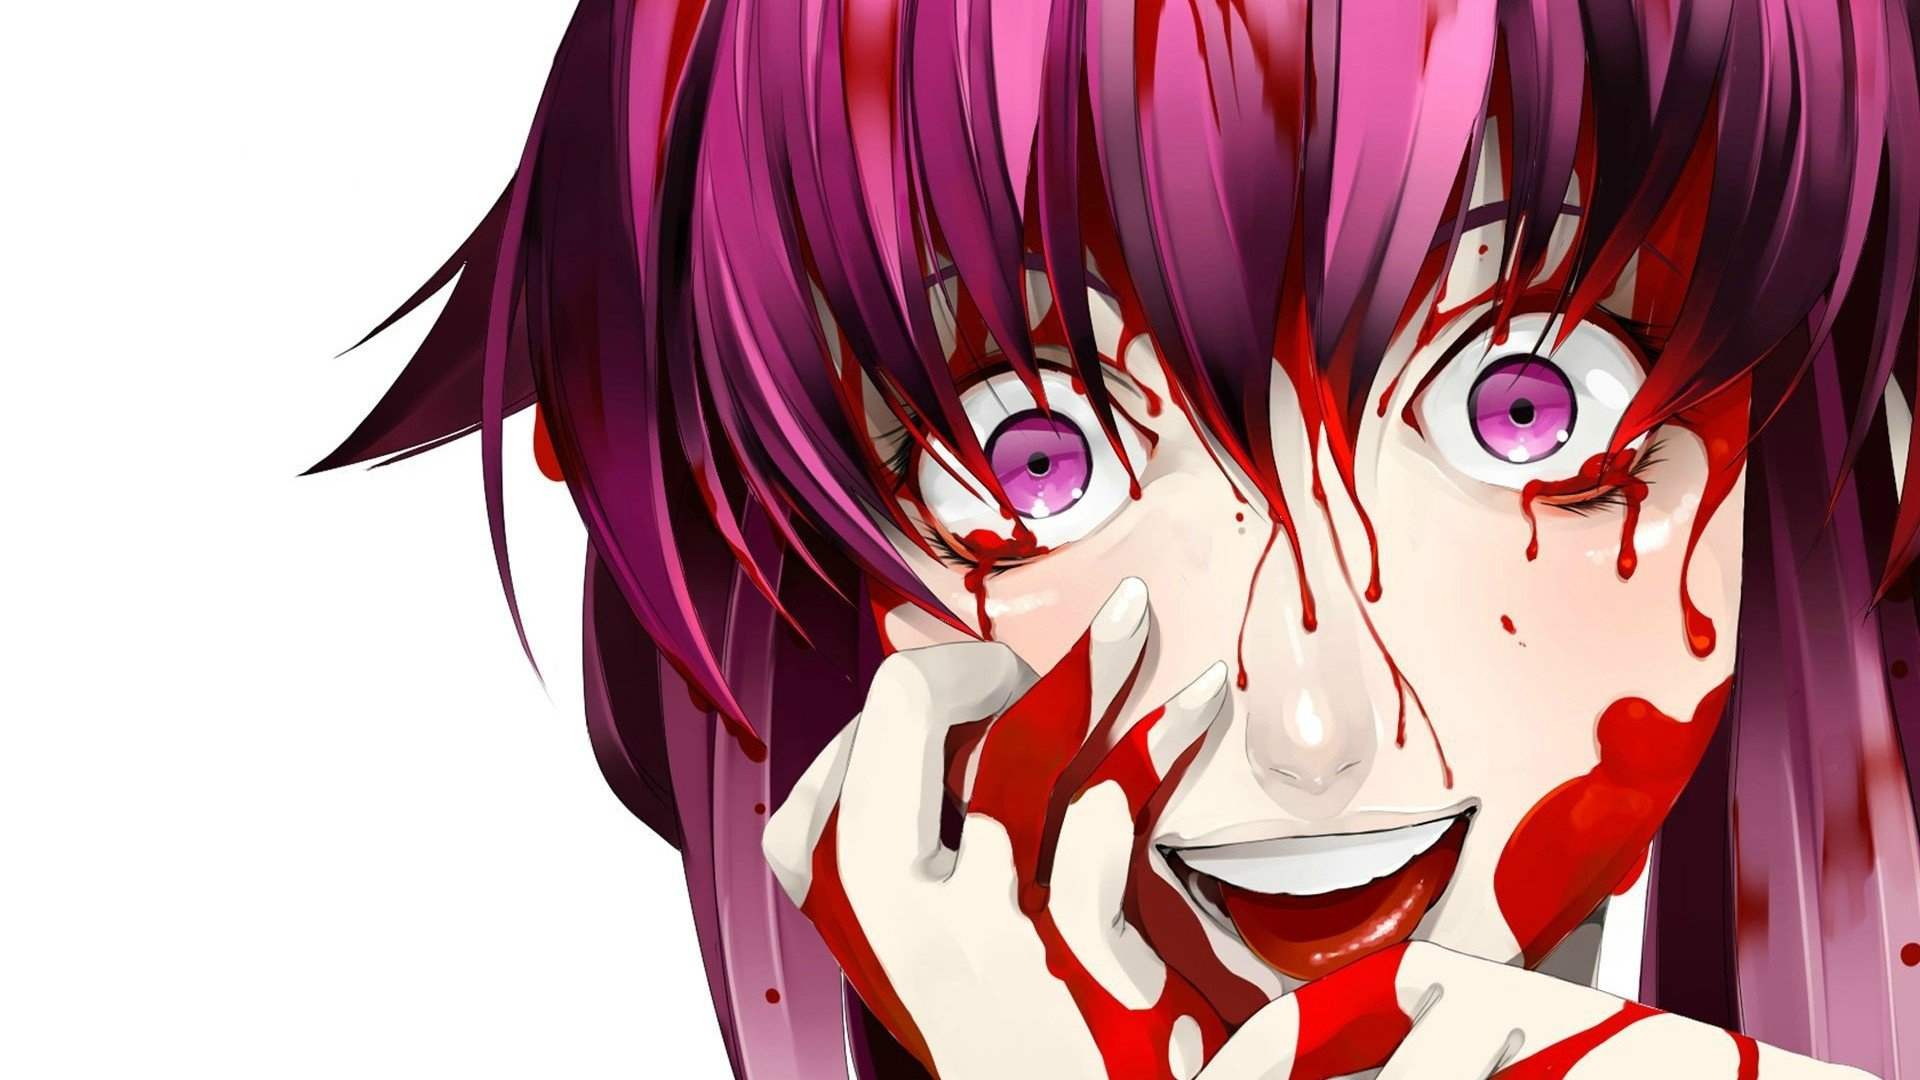 227 Mirai Nikki HD Wallpapers | Backgrounds - Wallpaper Abyss